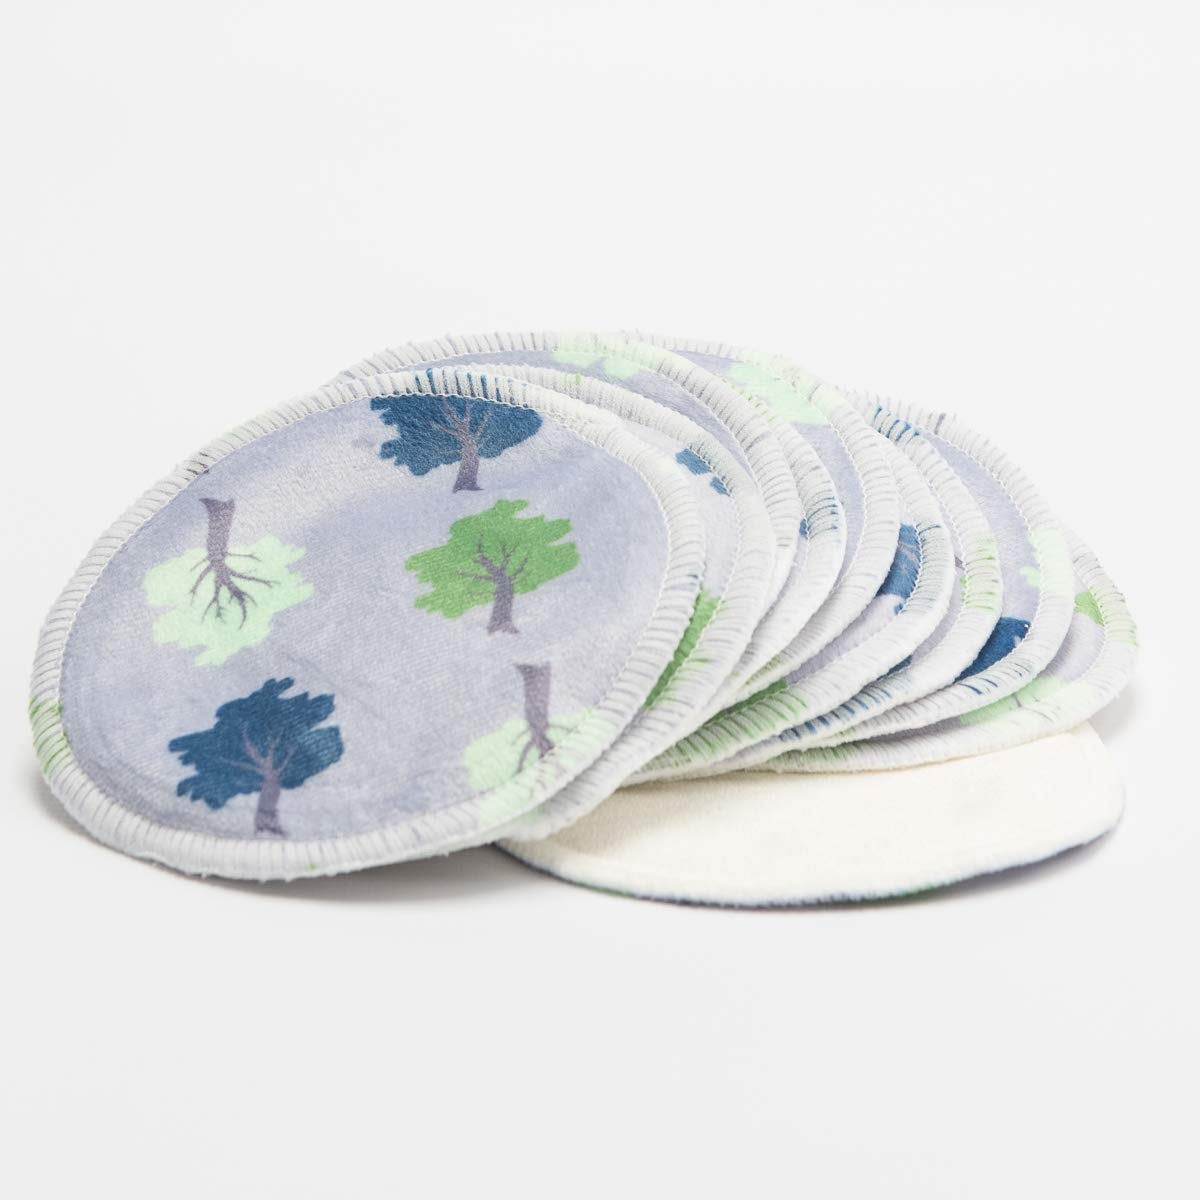 Luxury Triple Layer Make-up Removing Pads in Bamboo & Minky - Pack of 10 (Pink Dragonfly & Birds) Cheeky Mama